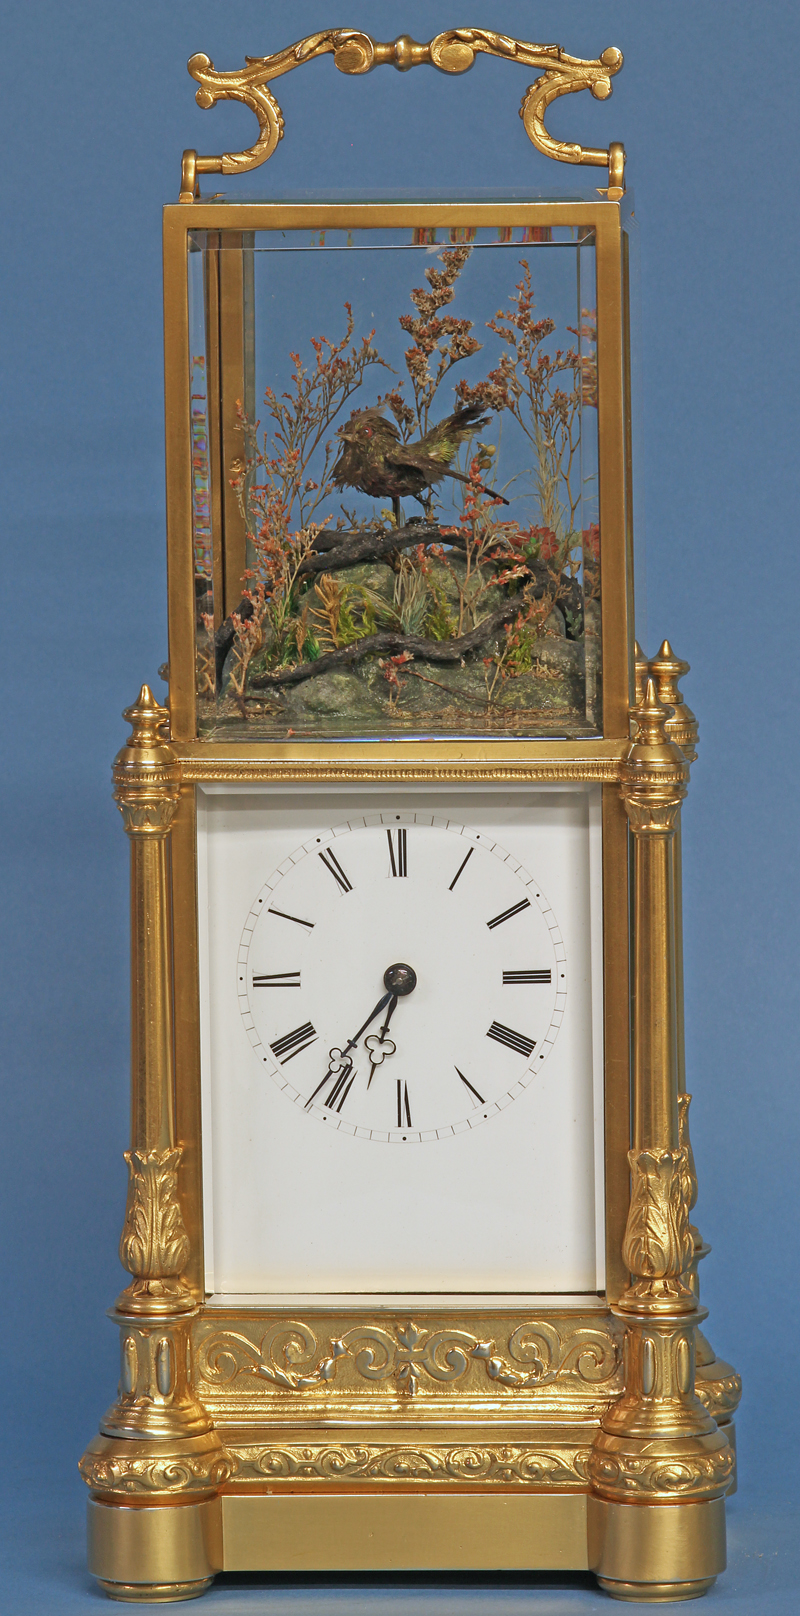 Automated Singing Bird Carriage Clock